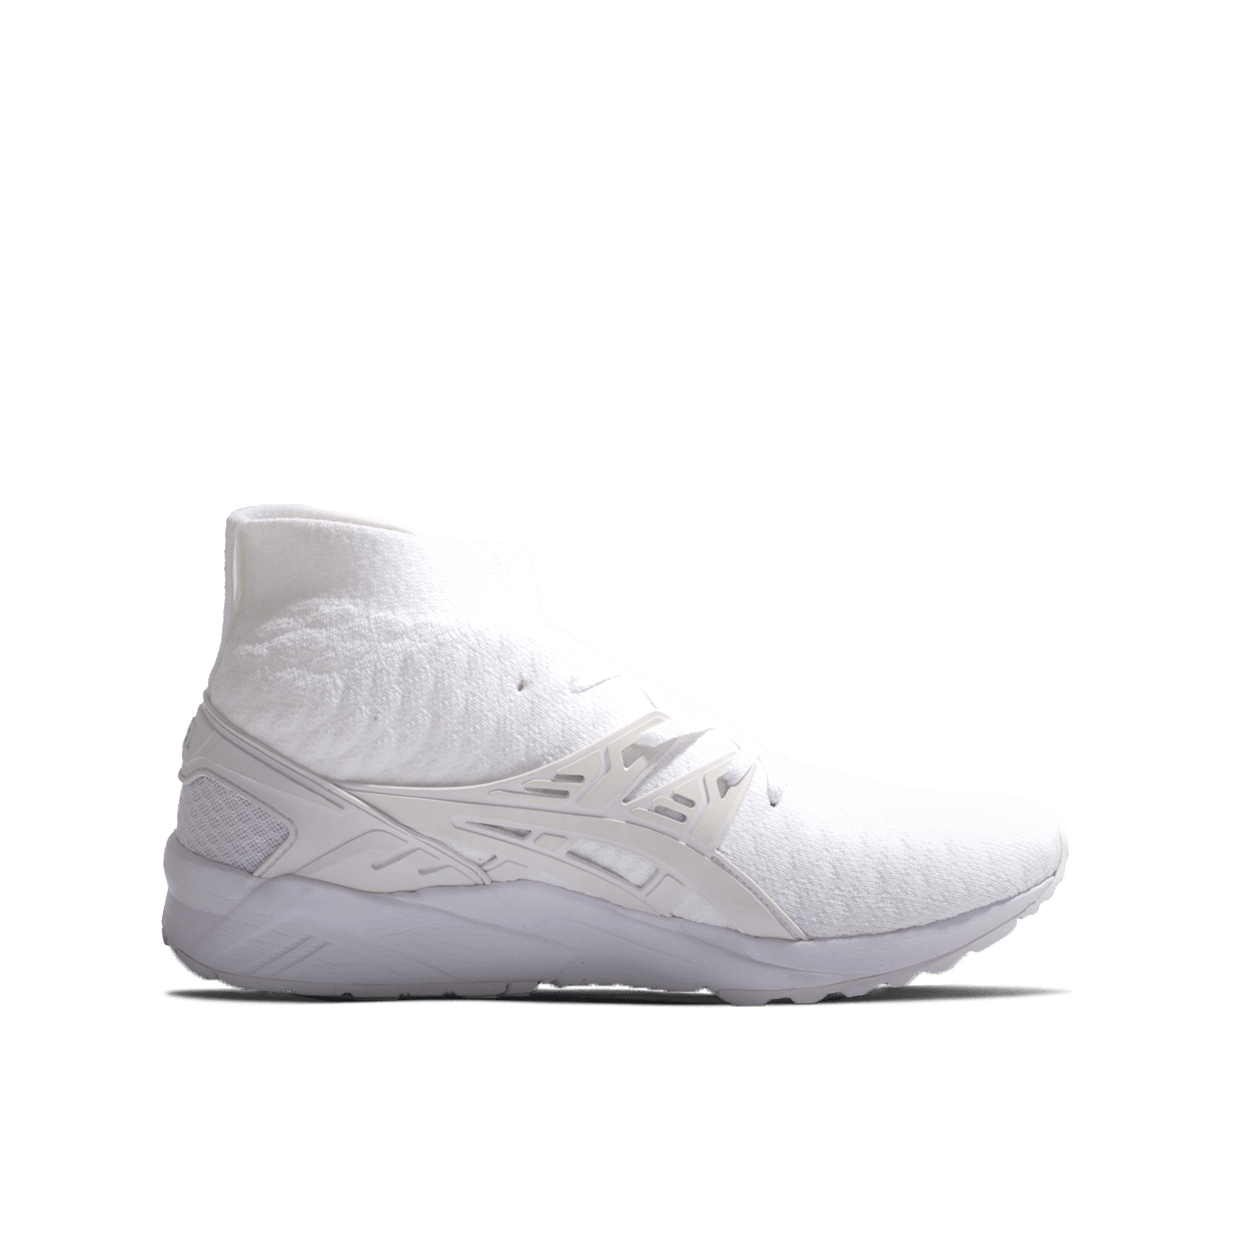 Gel-Kayano Trainer Knit MT - White